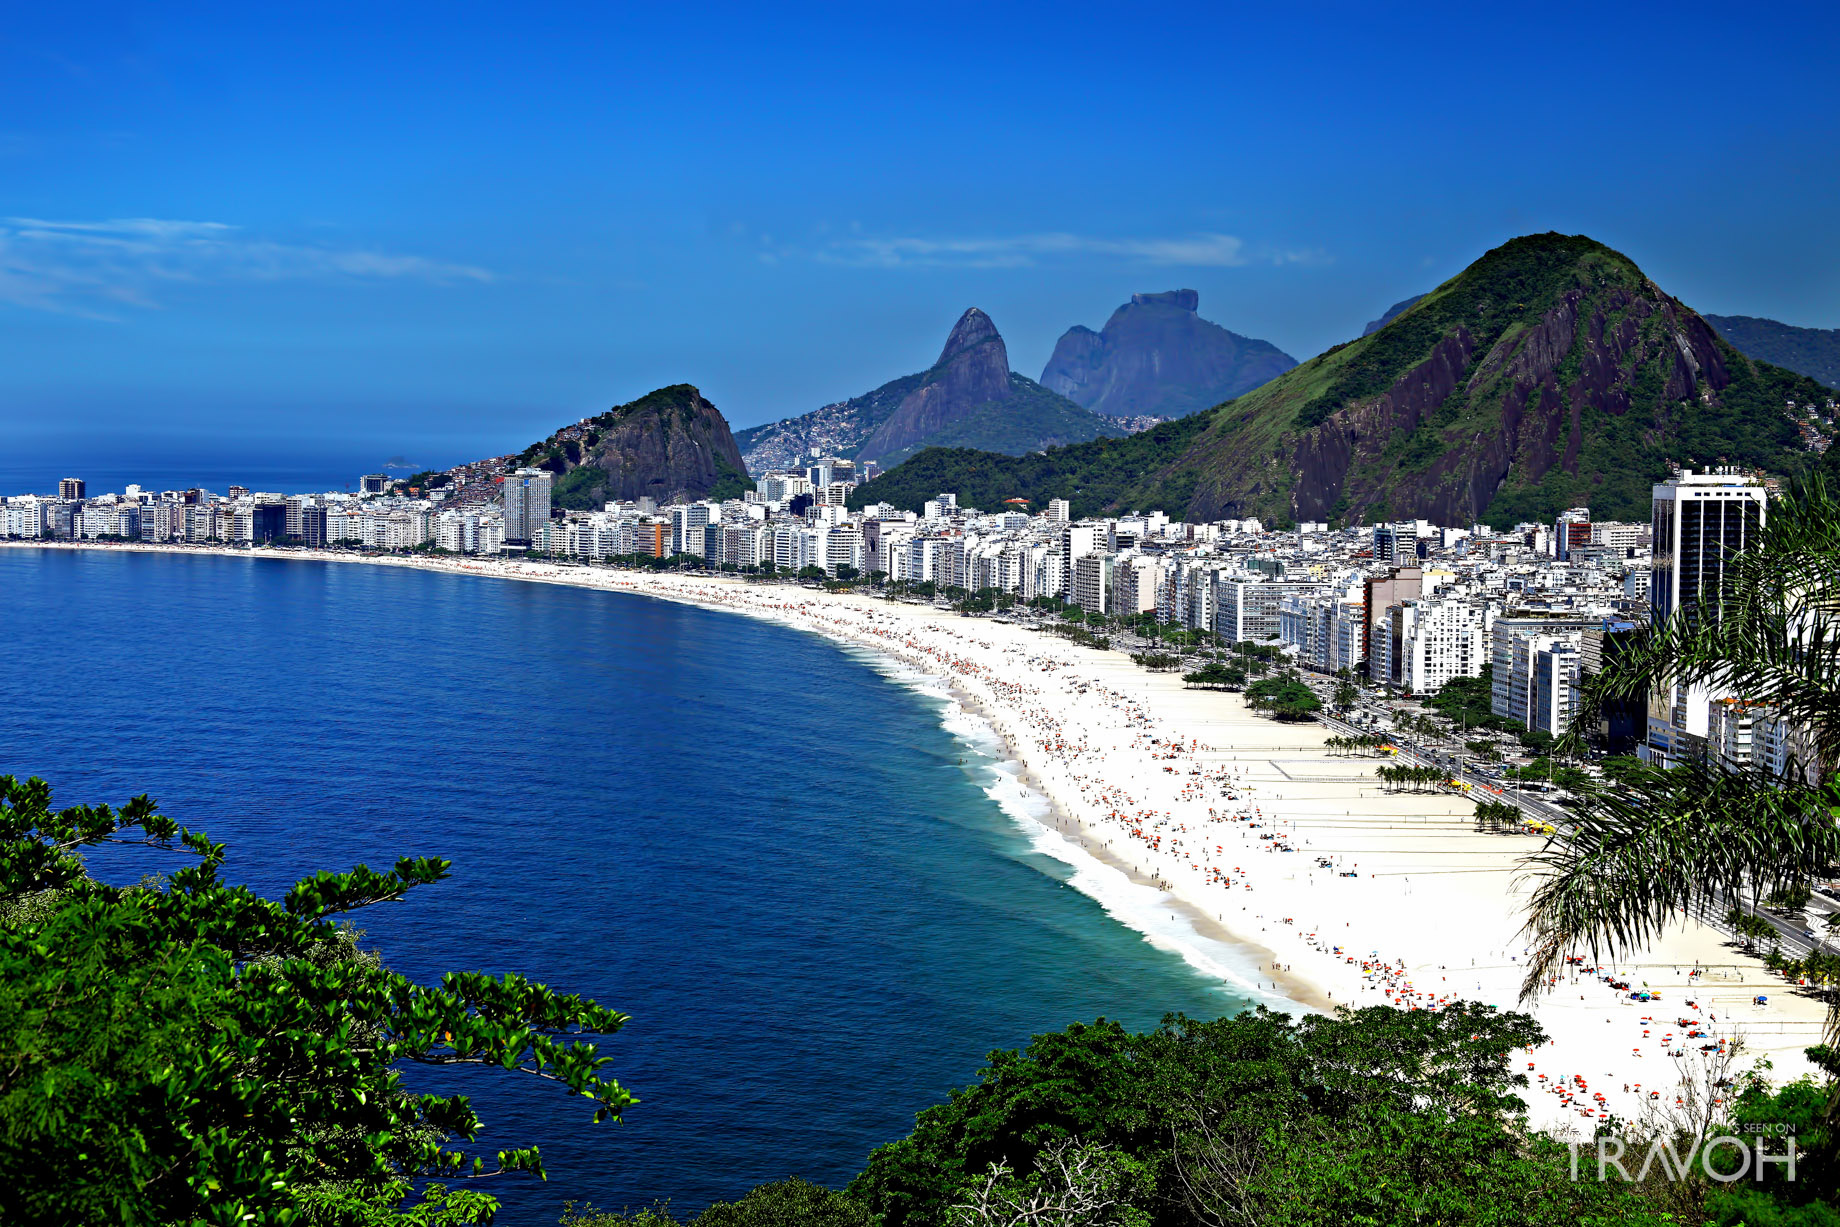 Forum on this topic: How to Plan a Trip to Brazil, how-to-plan-a-trip-to-brazil/